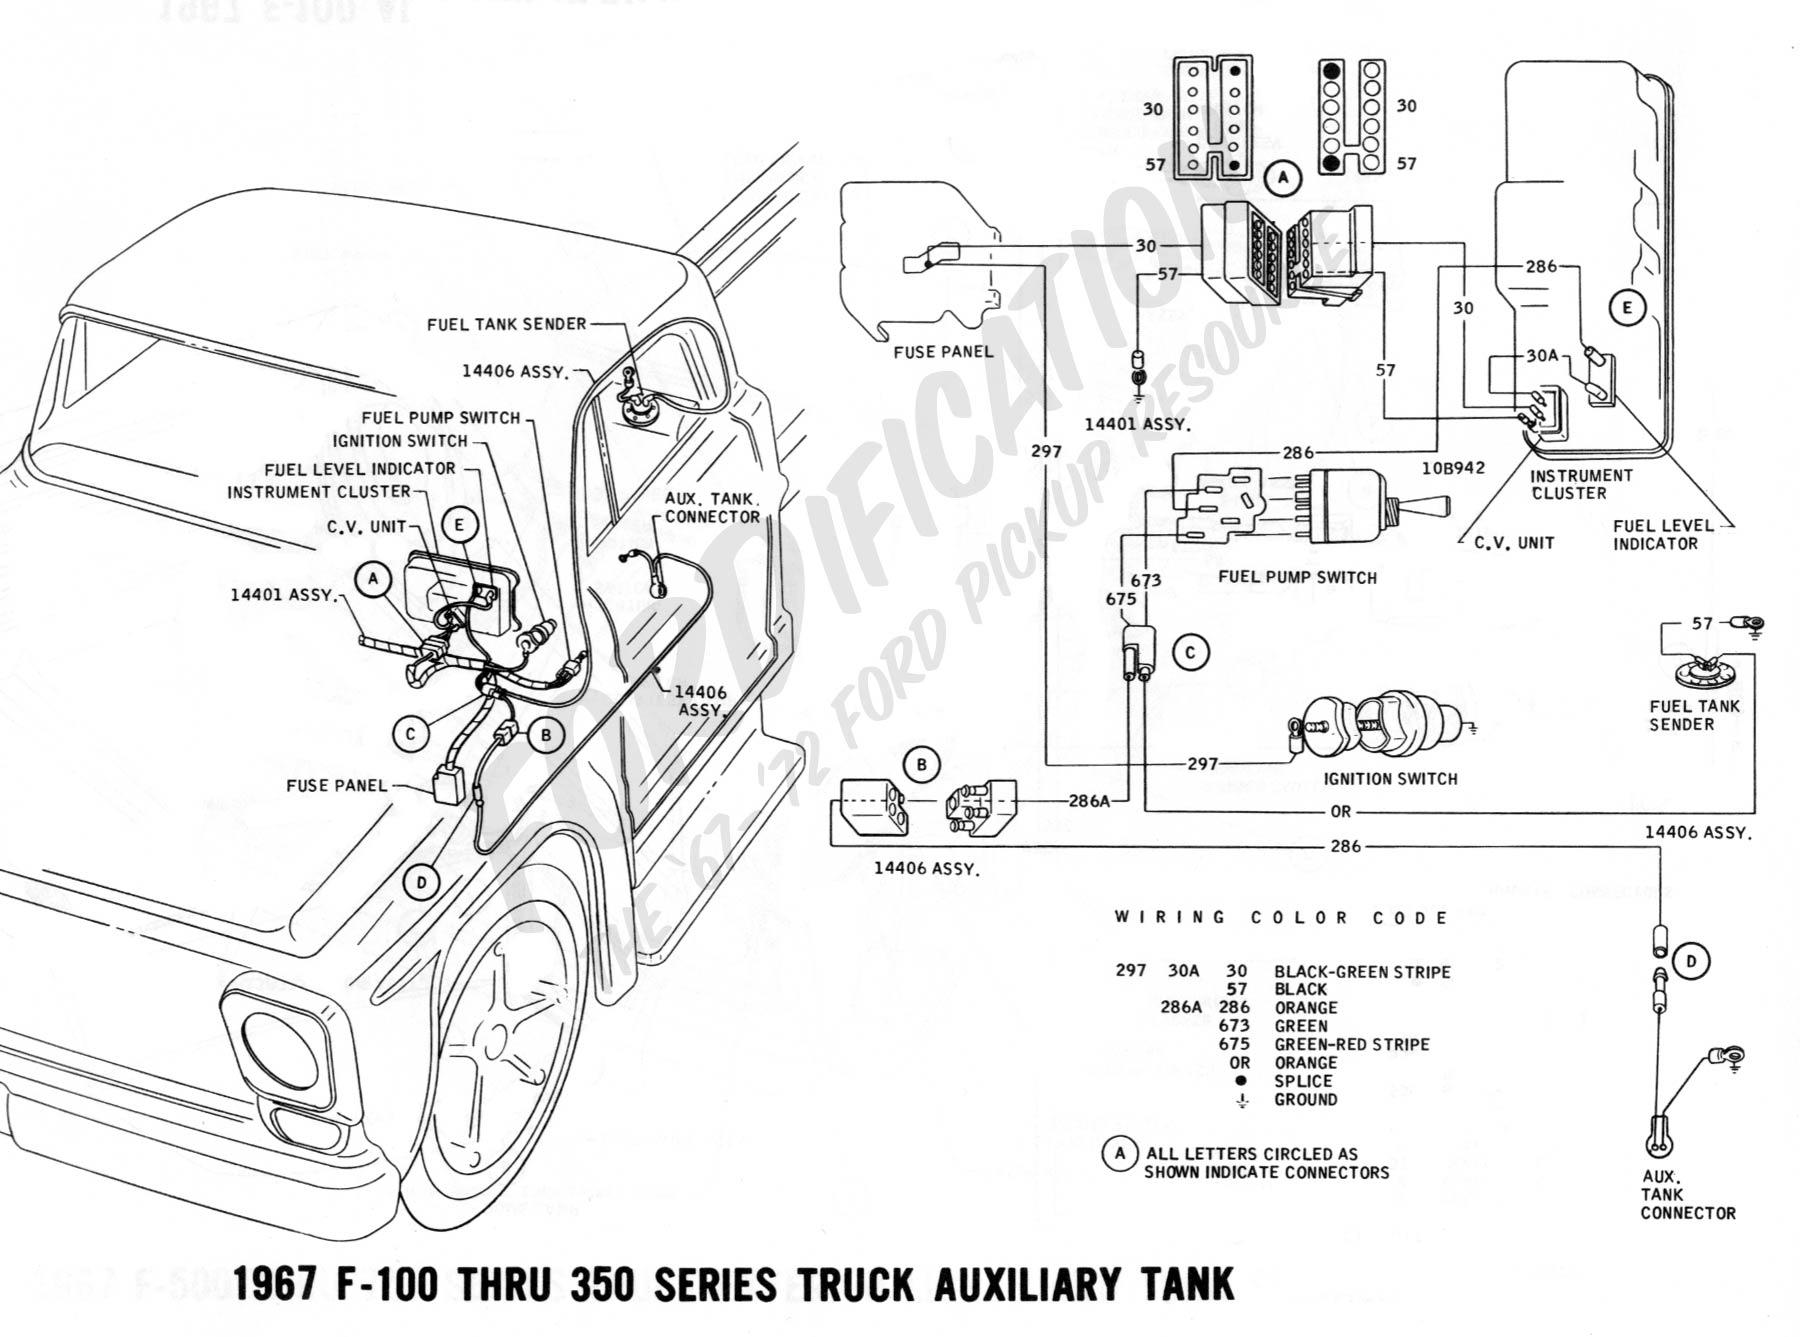 wiring 1967auxtank ford truck technical drawings and schematics section h wiring ford 390 engine wiring diagram at bakdesigns.co